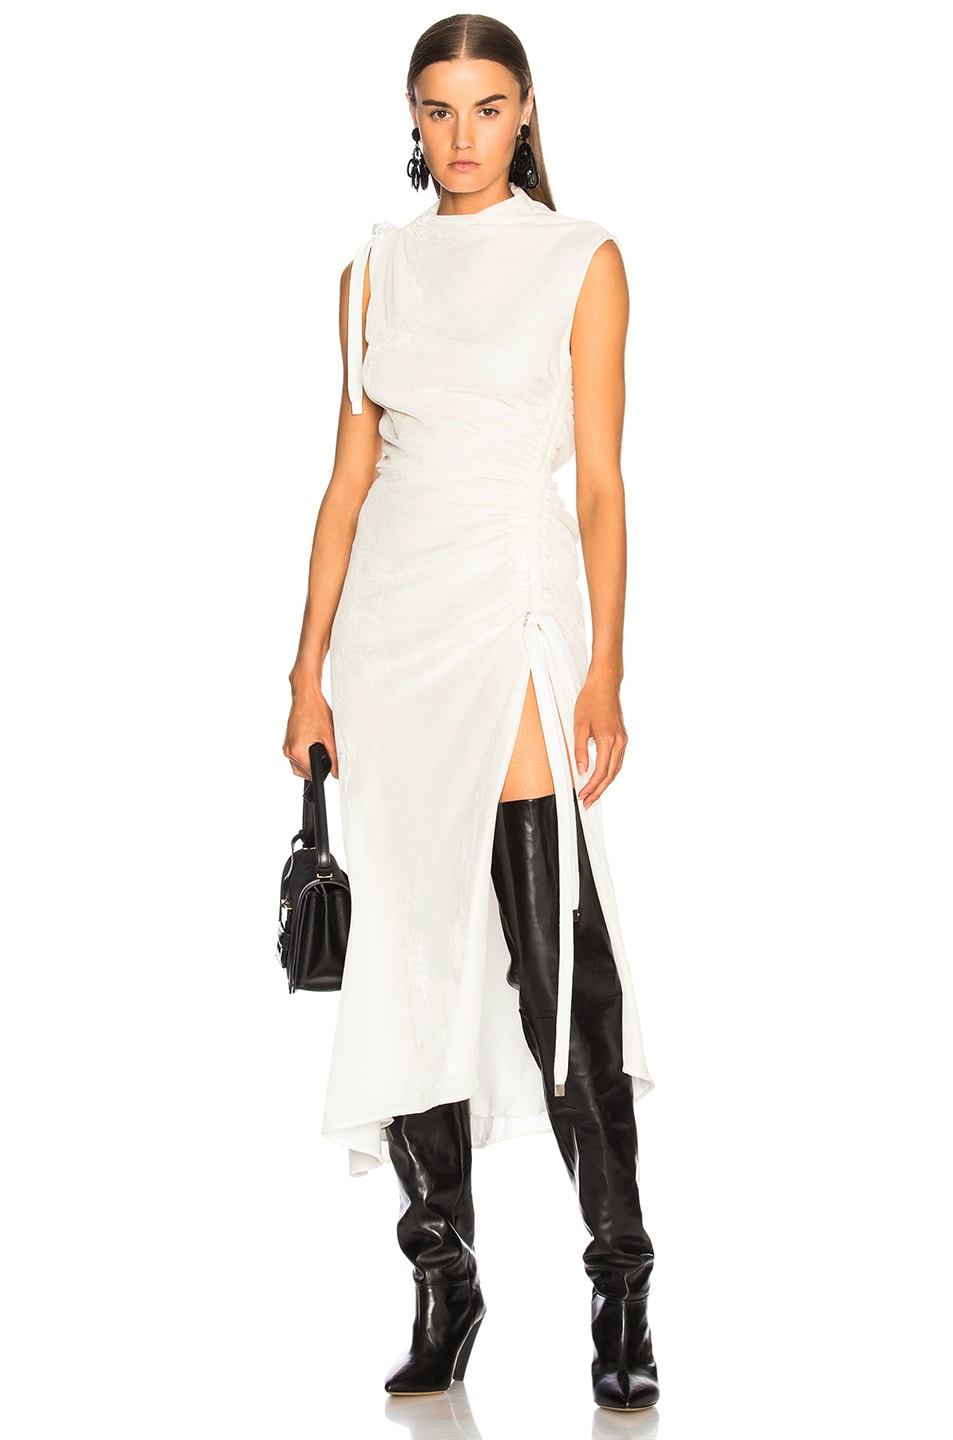 Monse Velvet Drawstring Dress in White